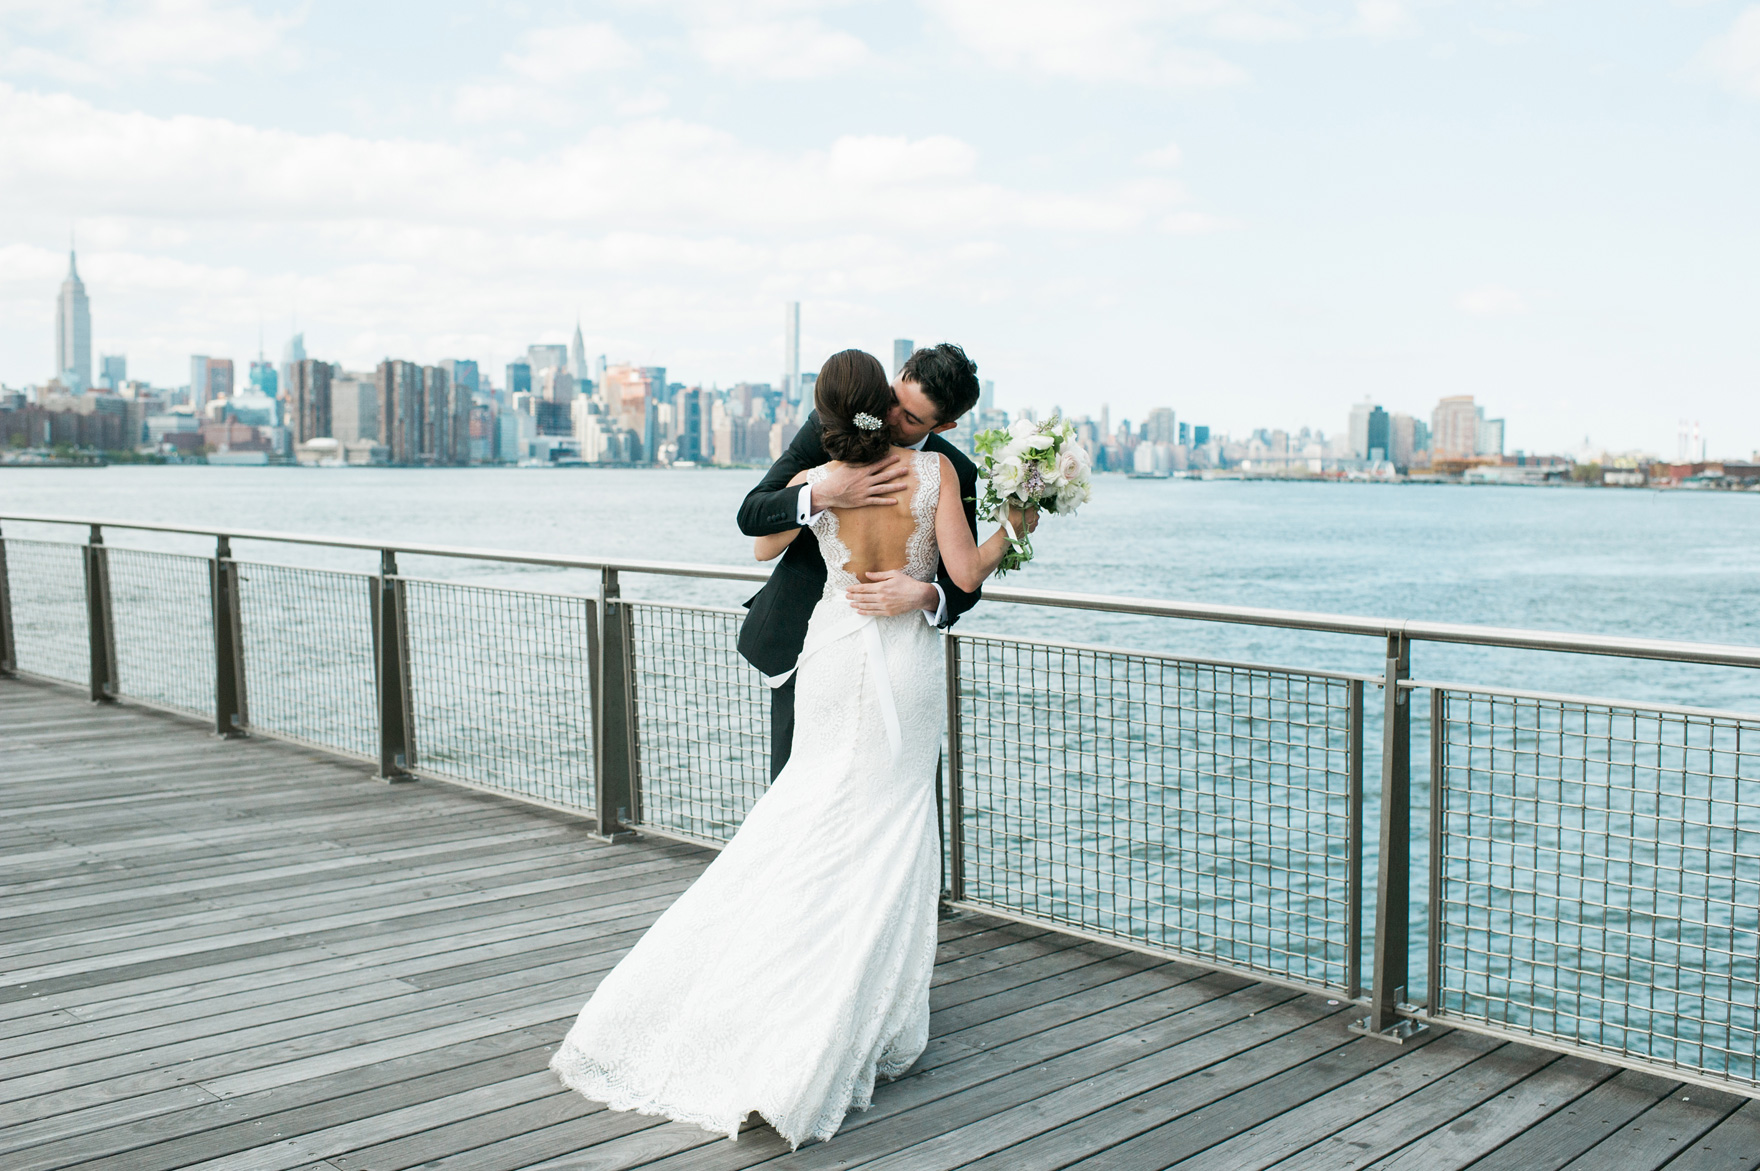 Williamsburg New York Fine Art Wedding by Christina Lilly Photography022